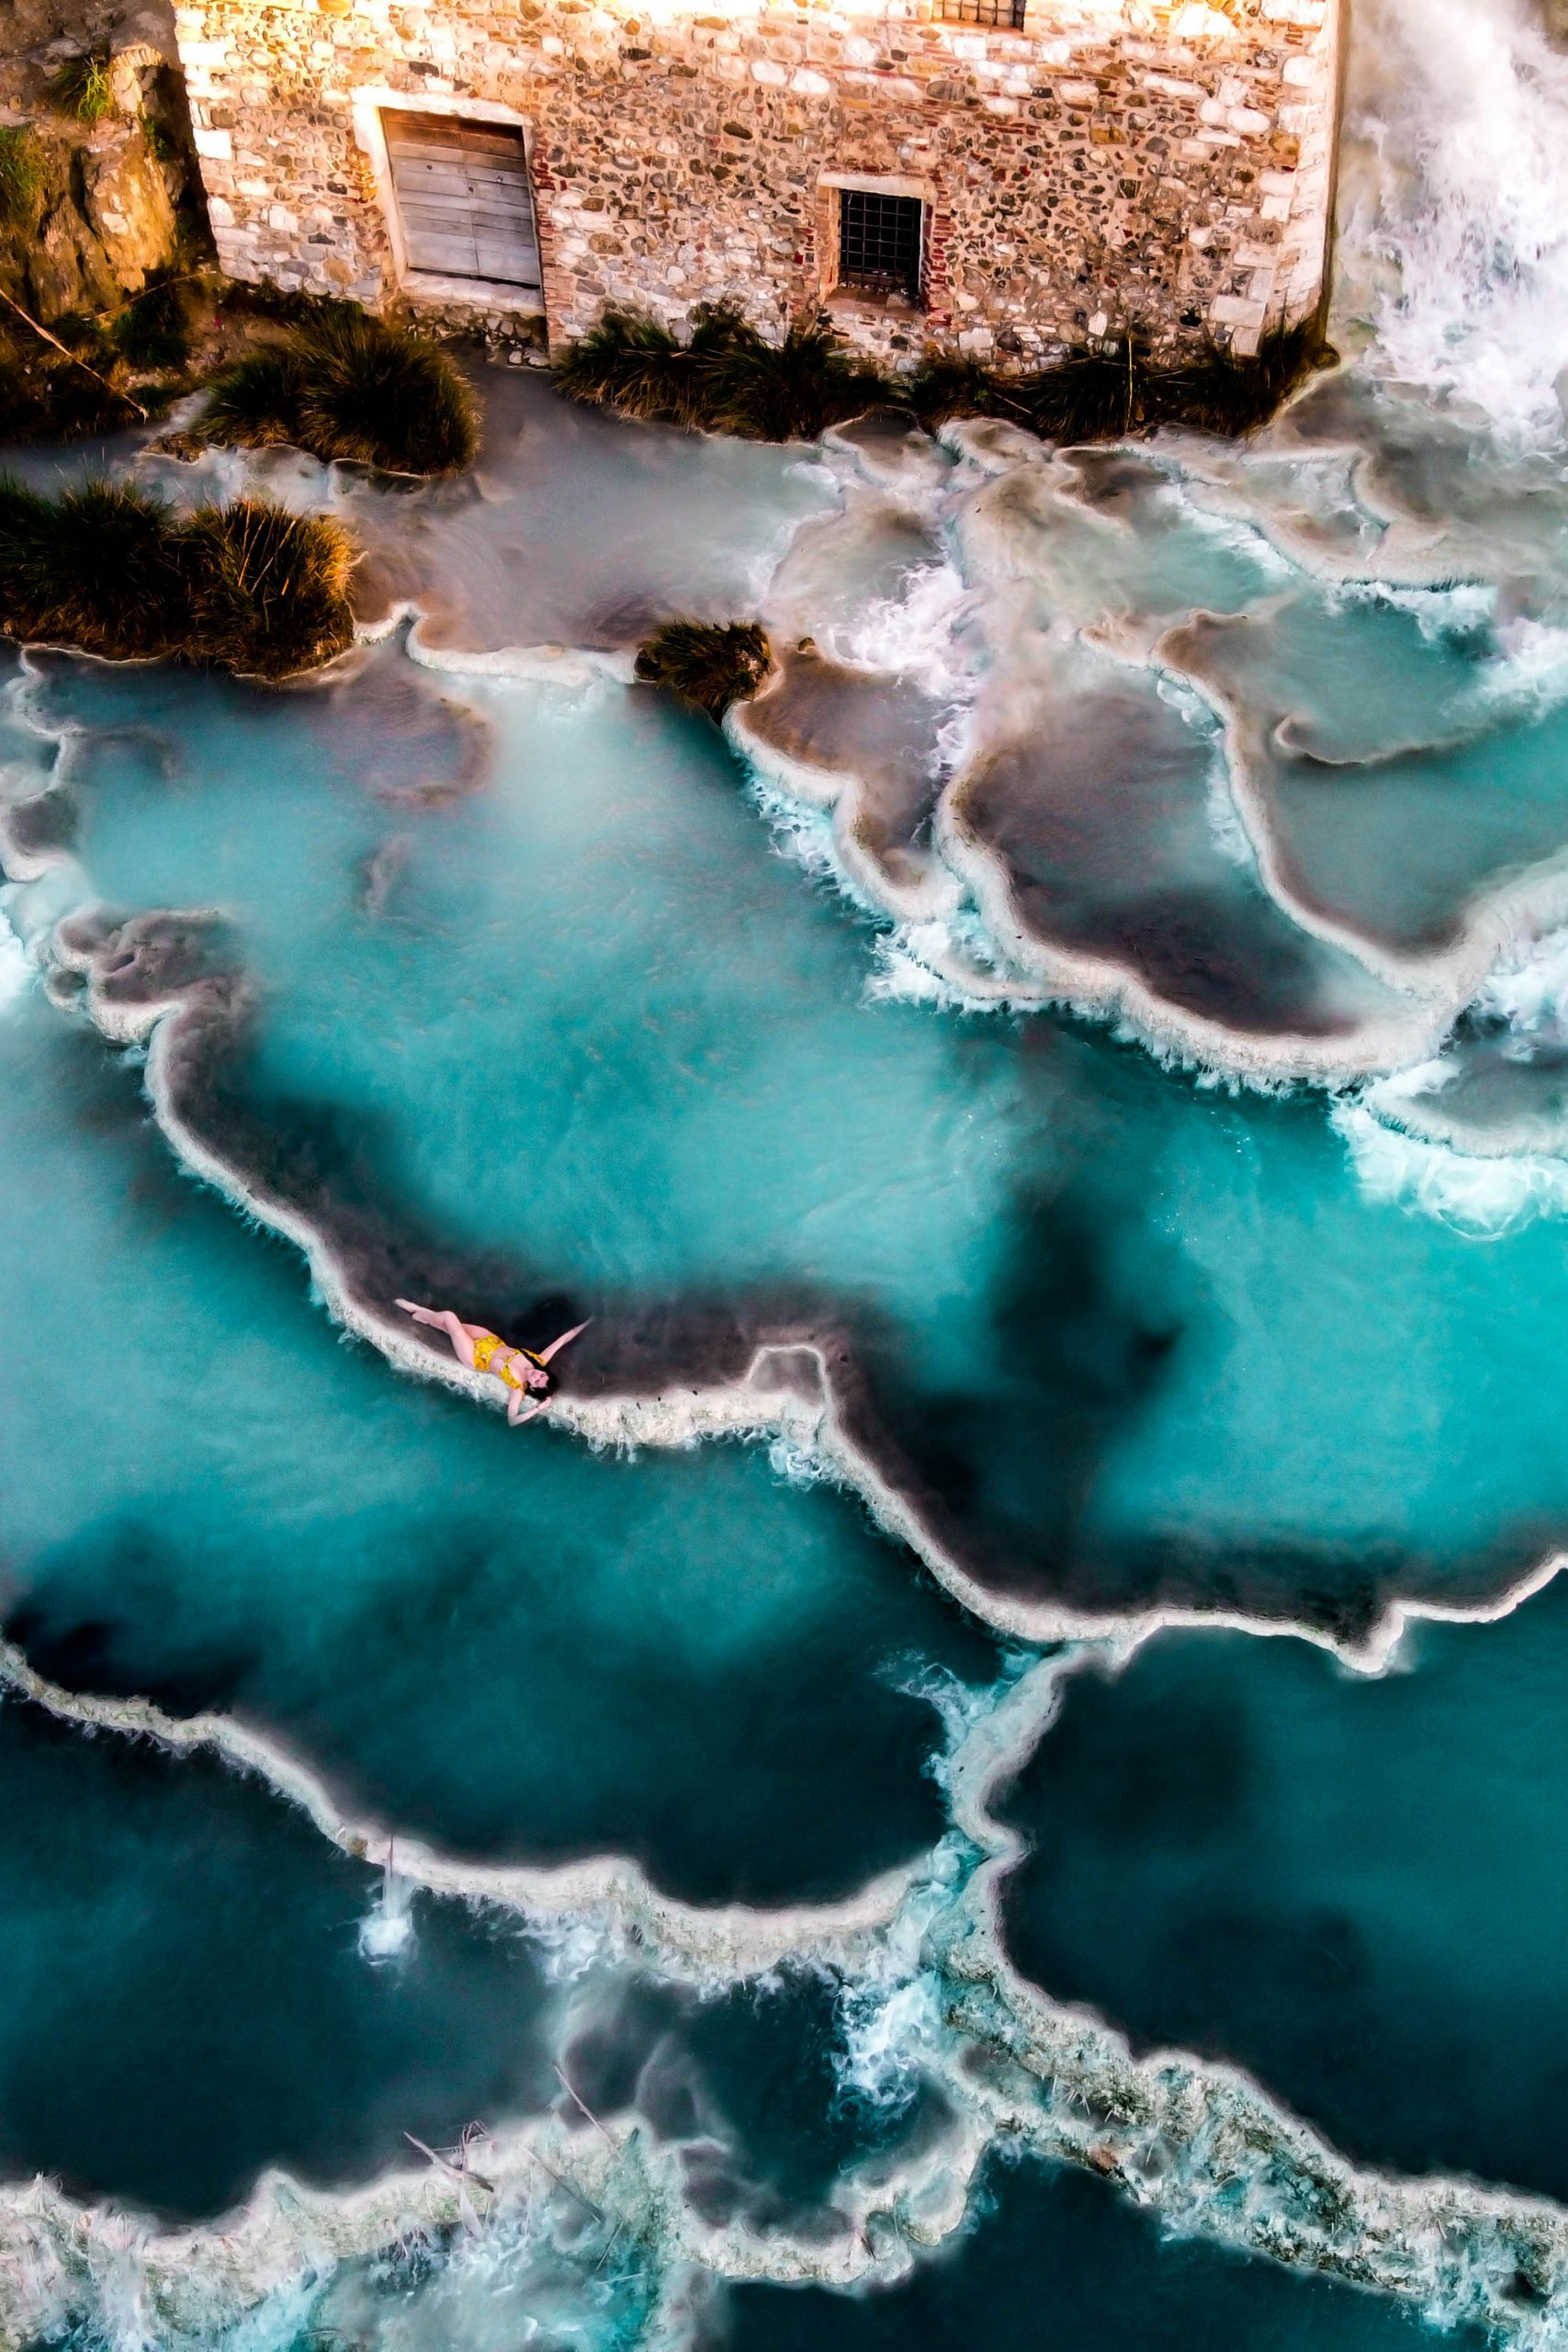 eva phan cascate del mulino terme di saturnia natural hot springs tuscany thermal bath spa italy solo female travel province of grosseto italy where to go tuscany dji mavic mini drone photography shein inexpensive yellow high waisted bikini wanderlust travel inspo